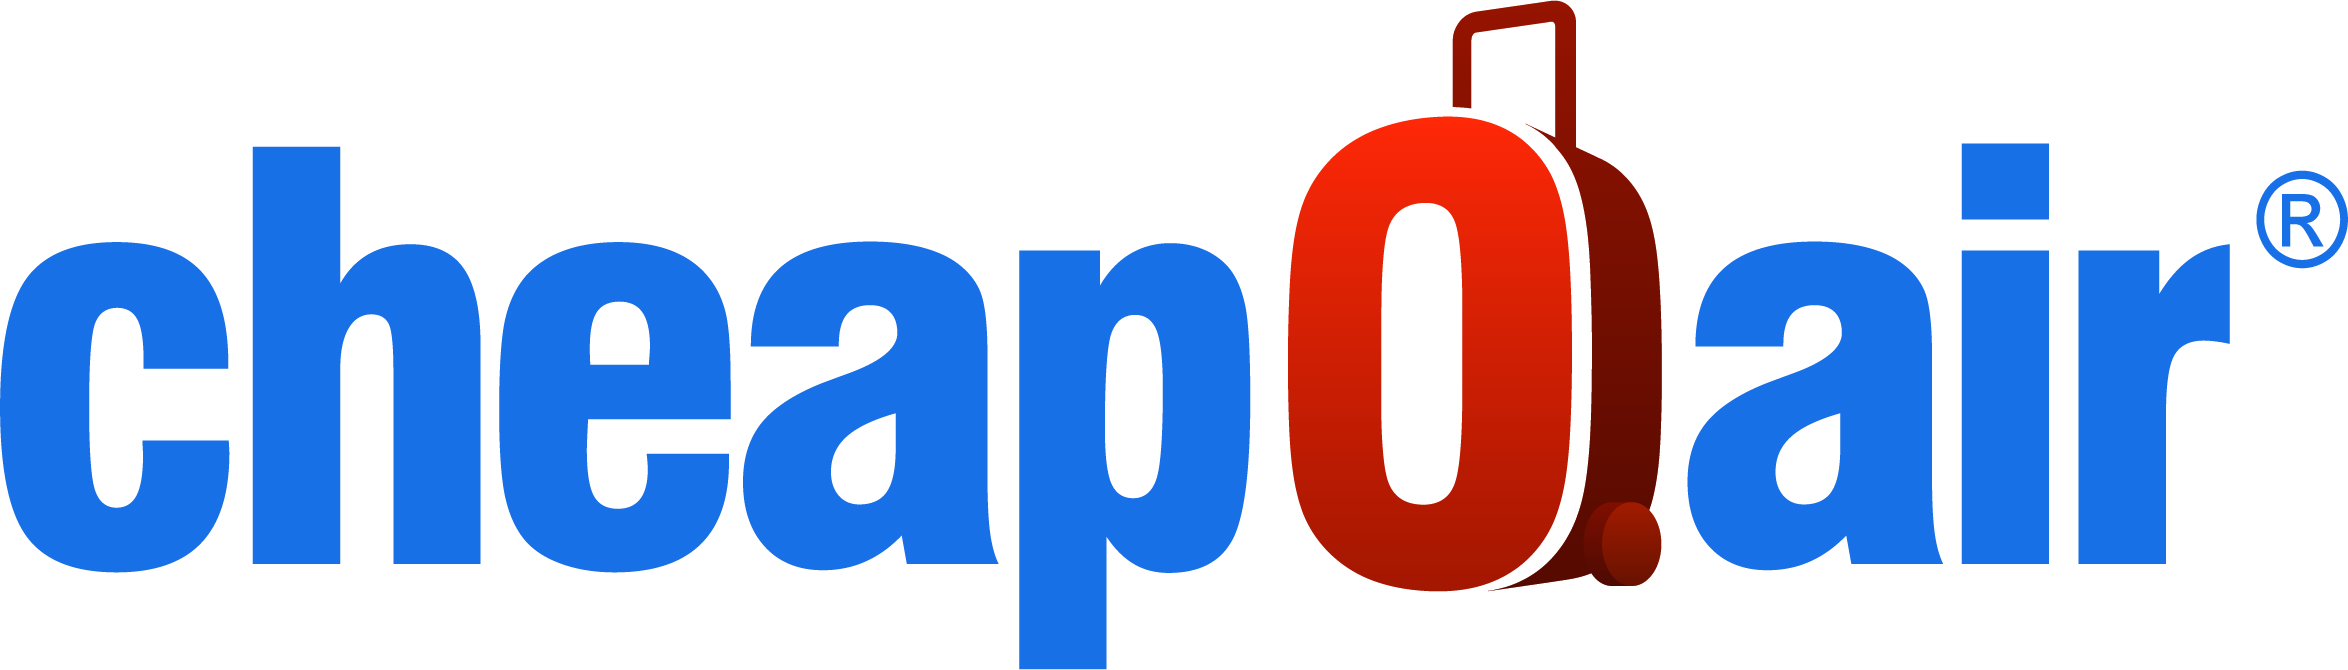 Cheap Hotels with low Hotel Rates guarantee on CheapOair. Find Hotel Reservations with free upgrade on your Hotel Rooms and night stays. Exclusive Hotel Deals with negotiated Hotel Prices on top Brands. Best Hotel Rates on all airport hotels, beach front hotels and luxury accommodations for top destinations on CheapOair.